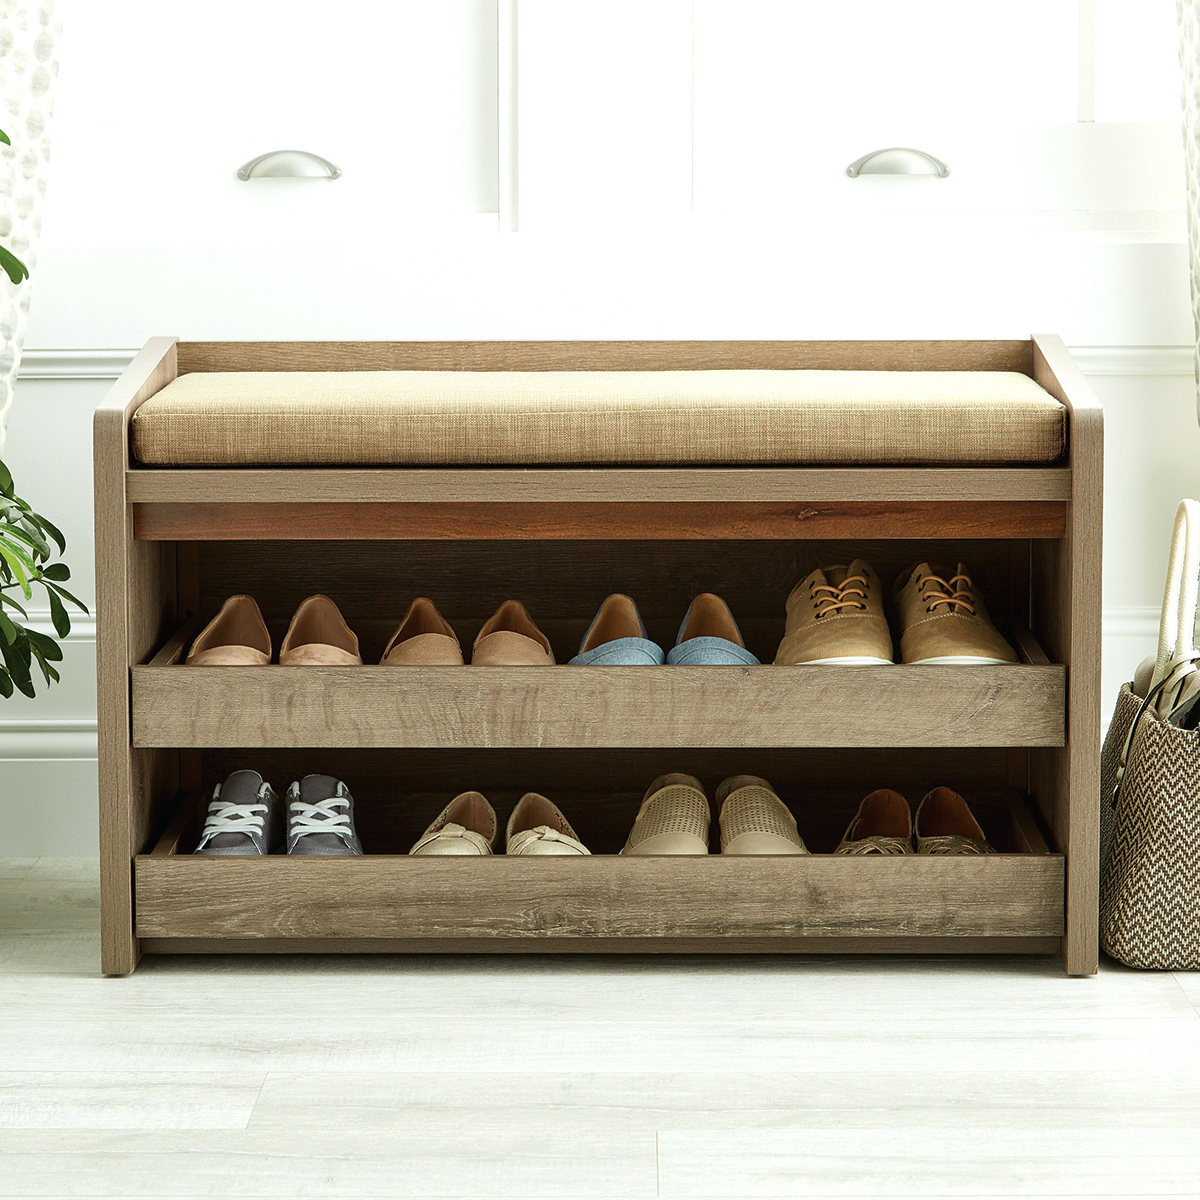 Entryway Storage Bench with Coat Rack | Entry Bench with Storage and Hooks | Entryway Coat Rack Bench